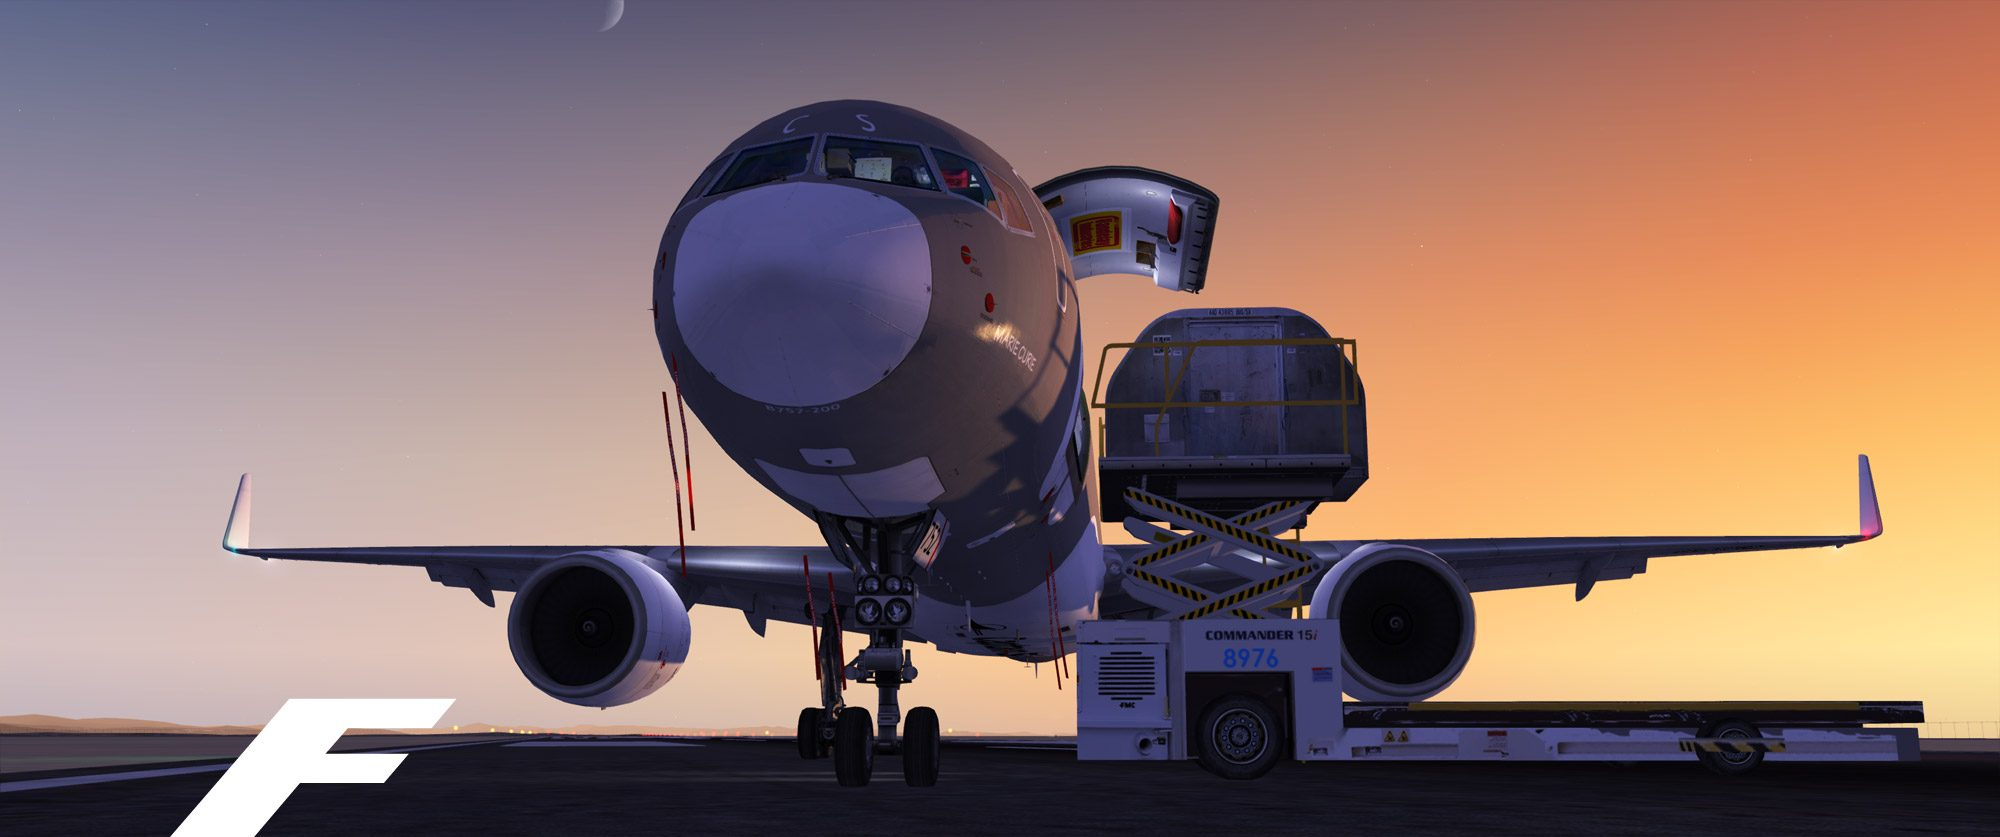 757 freighter